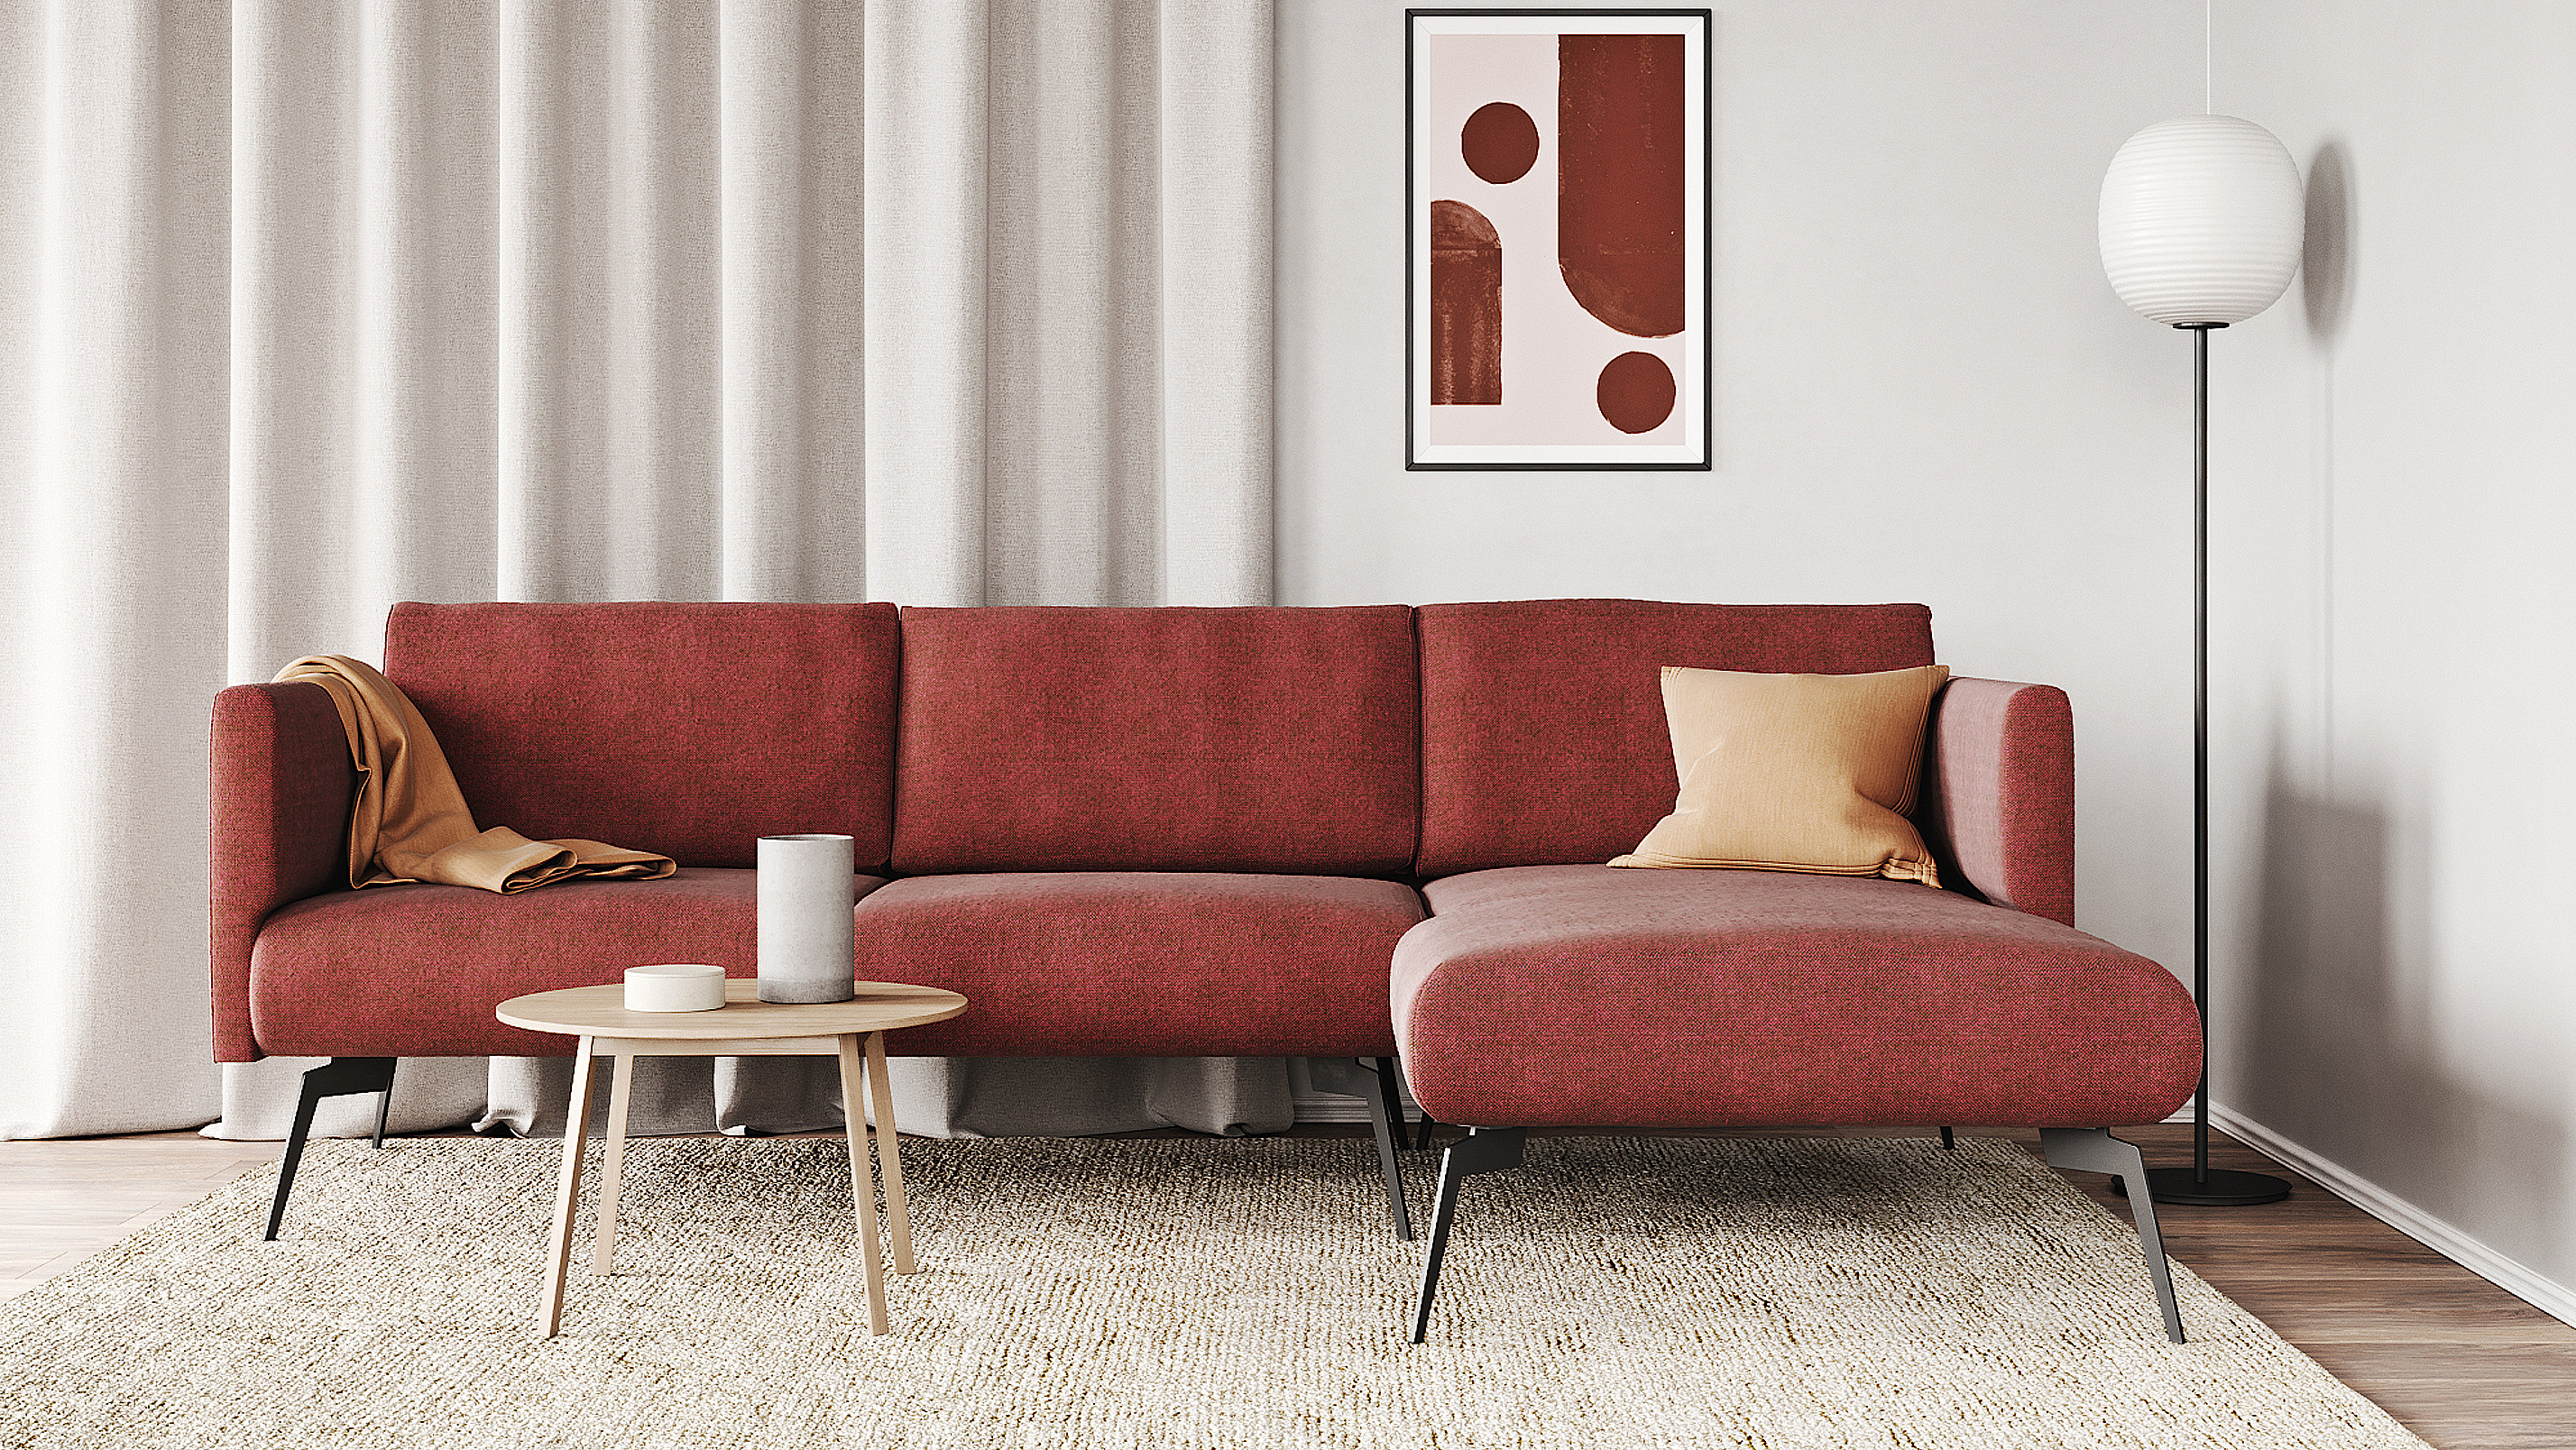 Living room example with the sofa Adele in rusty red color.